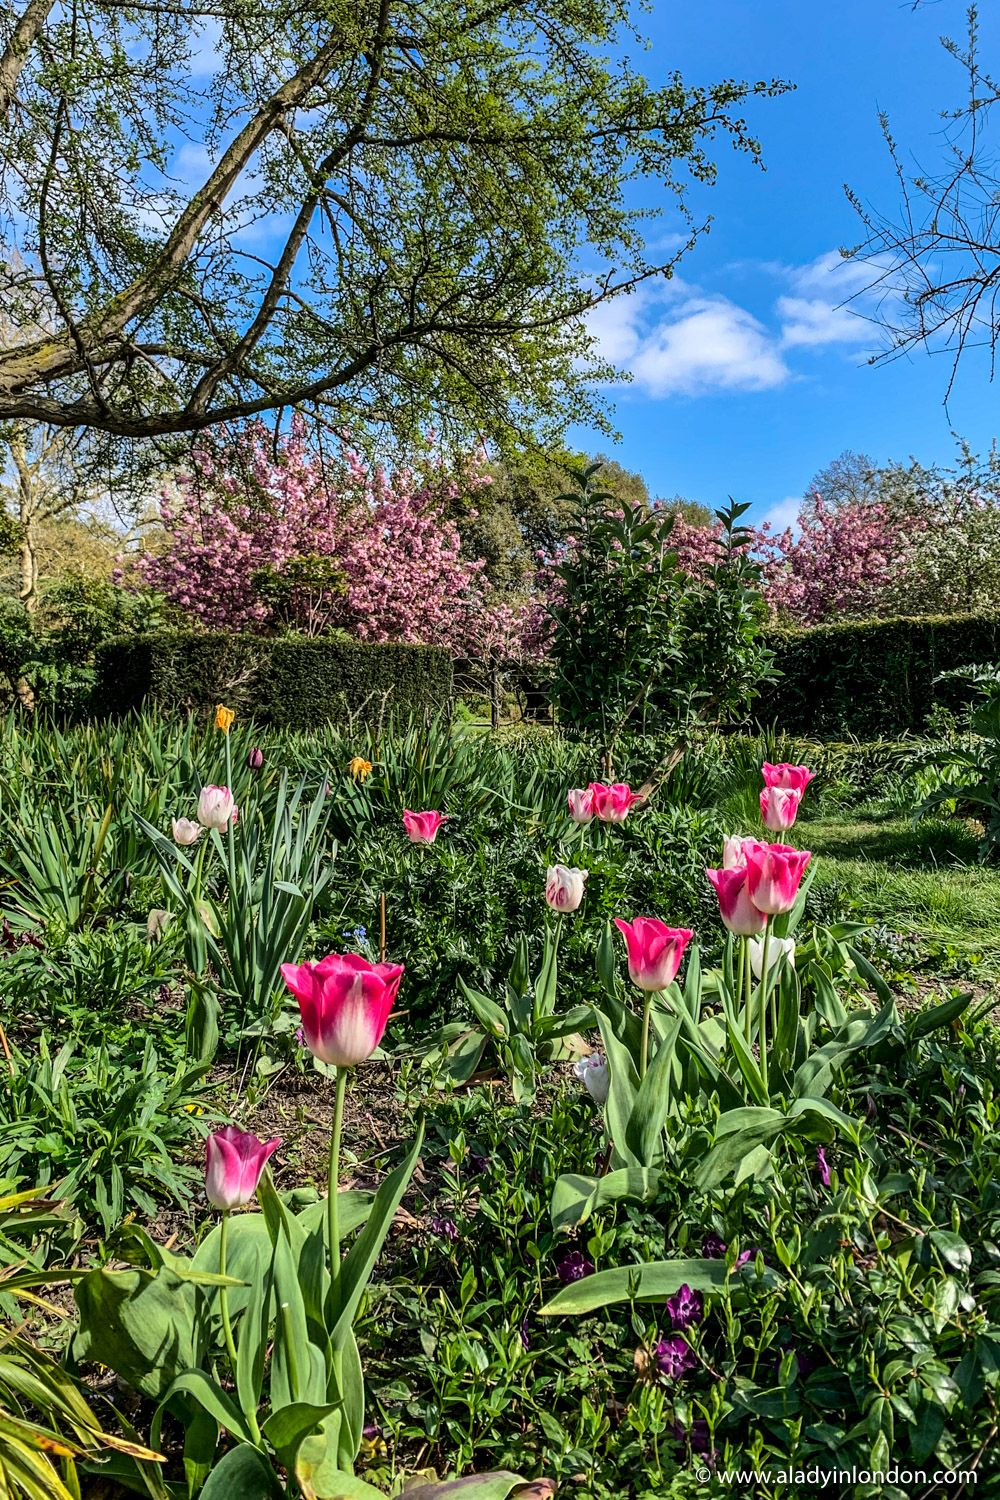 6395bd710adc1d4167fde6a452e1dcbc - Best Gardens To Visit In Spring